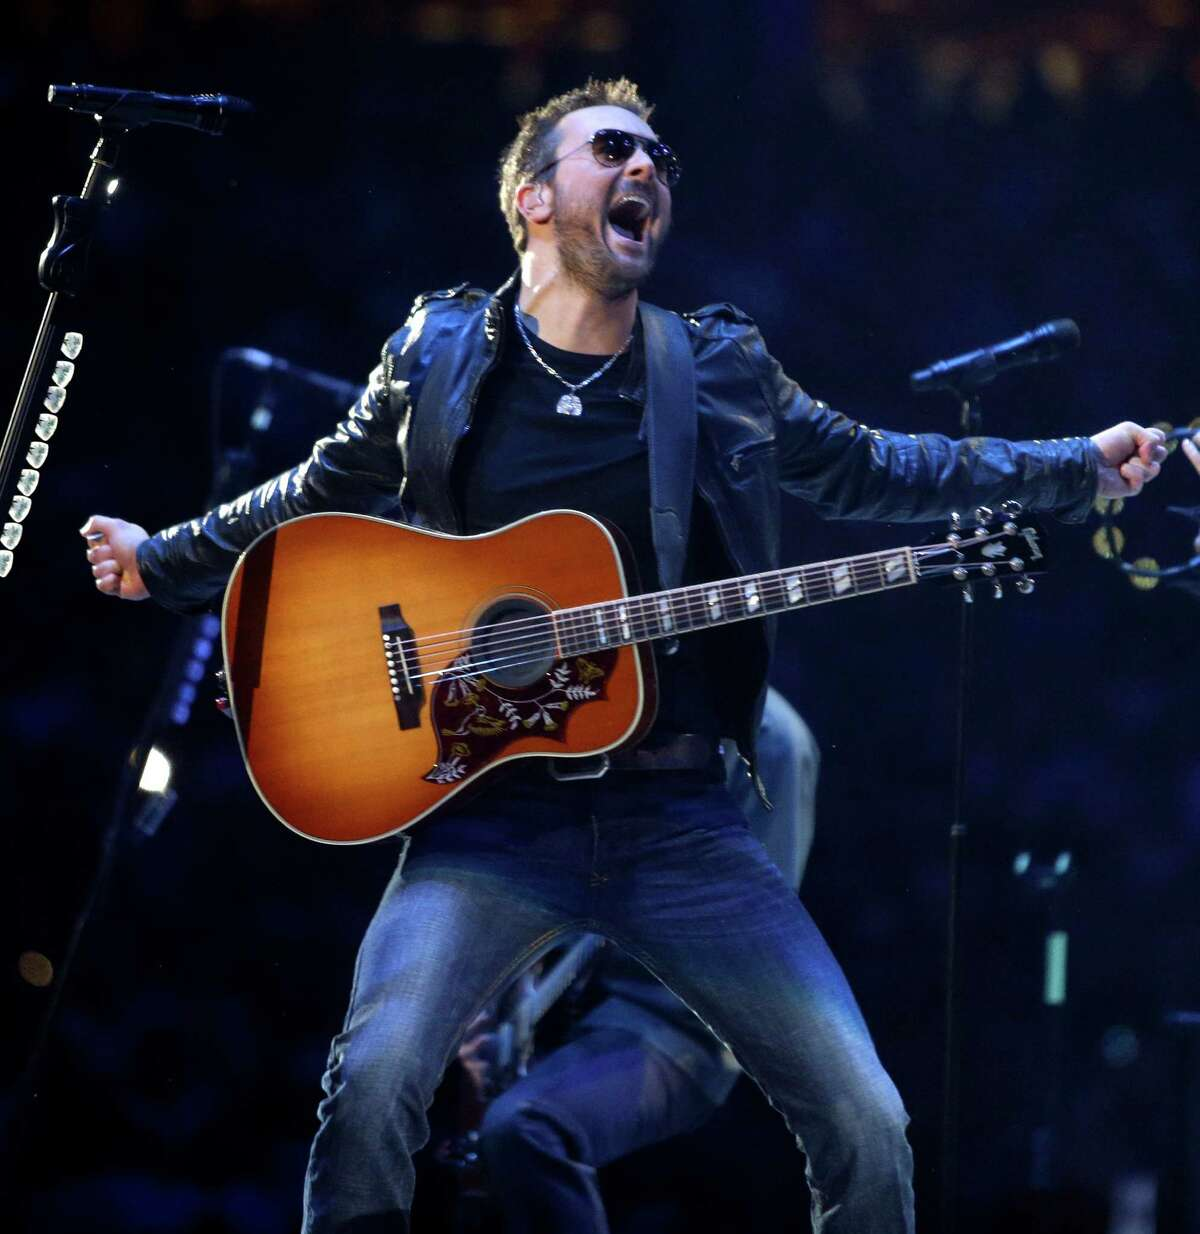 Eric Church performs during RodeoHouston at the Houston Livestock Show and Rodeo in NRG Stadium Tuesday, March 3, 2015, in Houston.